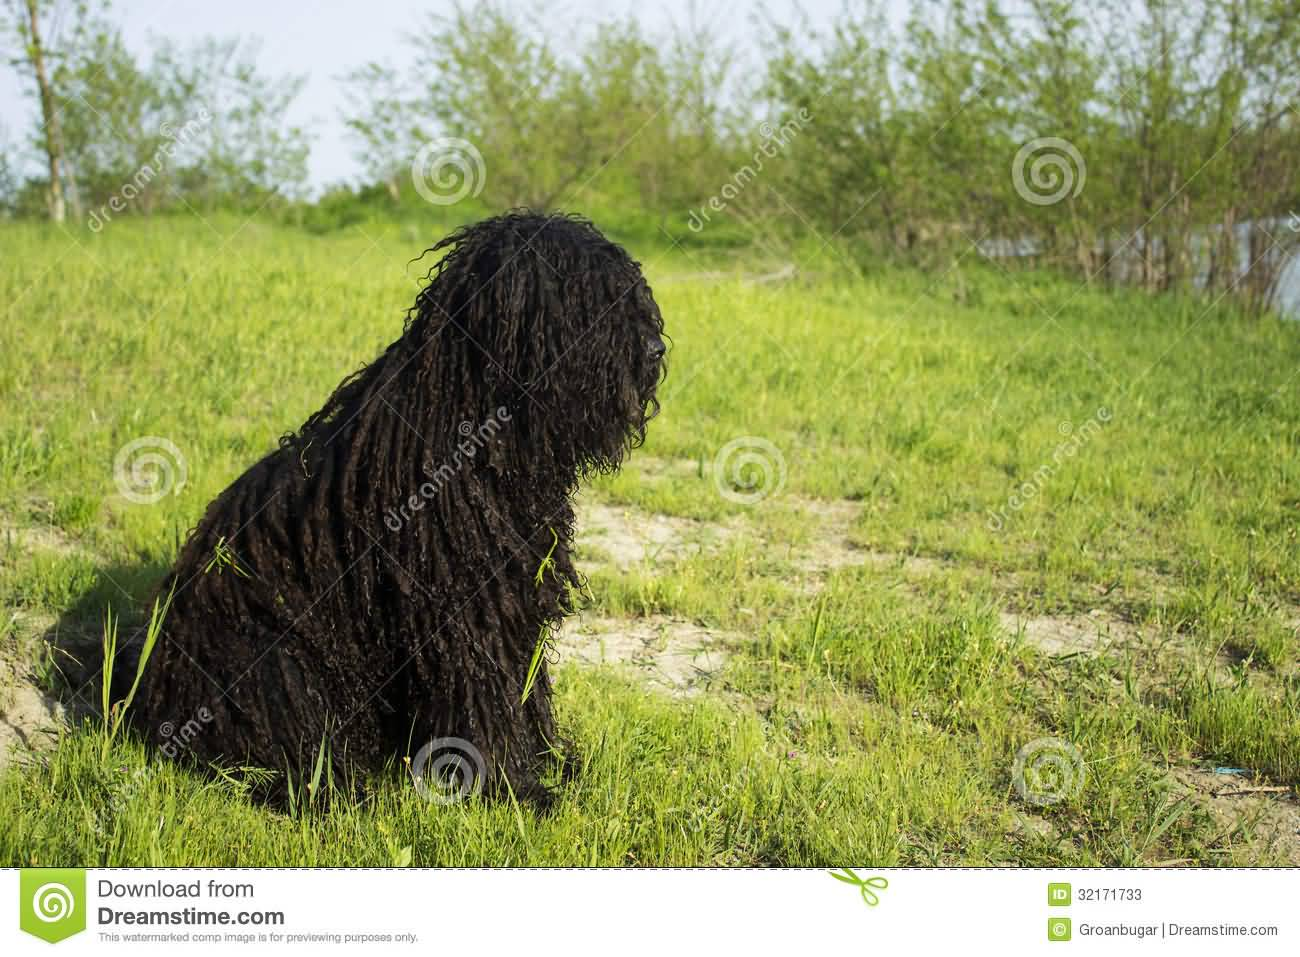 Puli Hungarian Dog Sitting On Grass